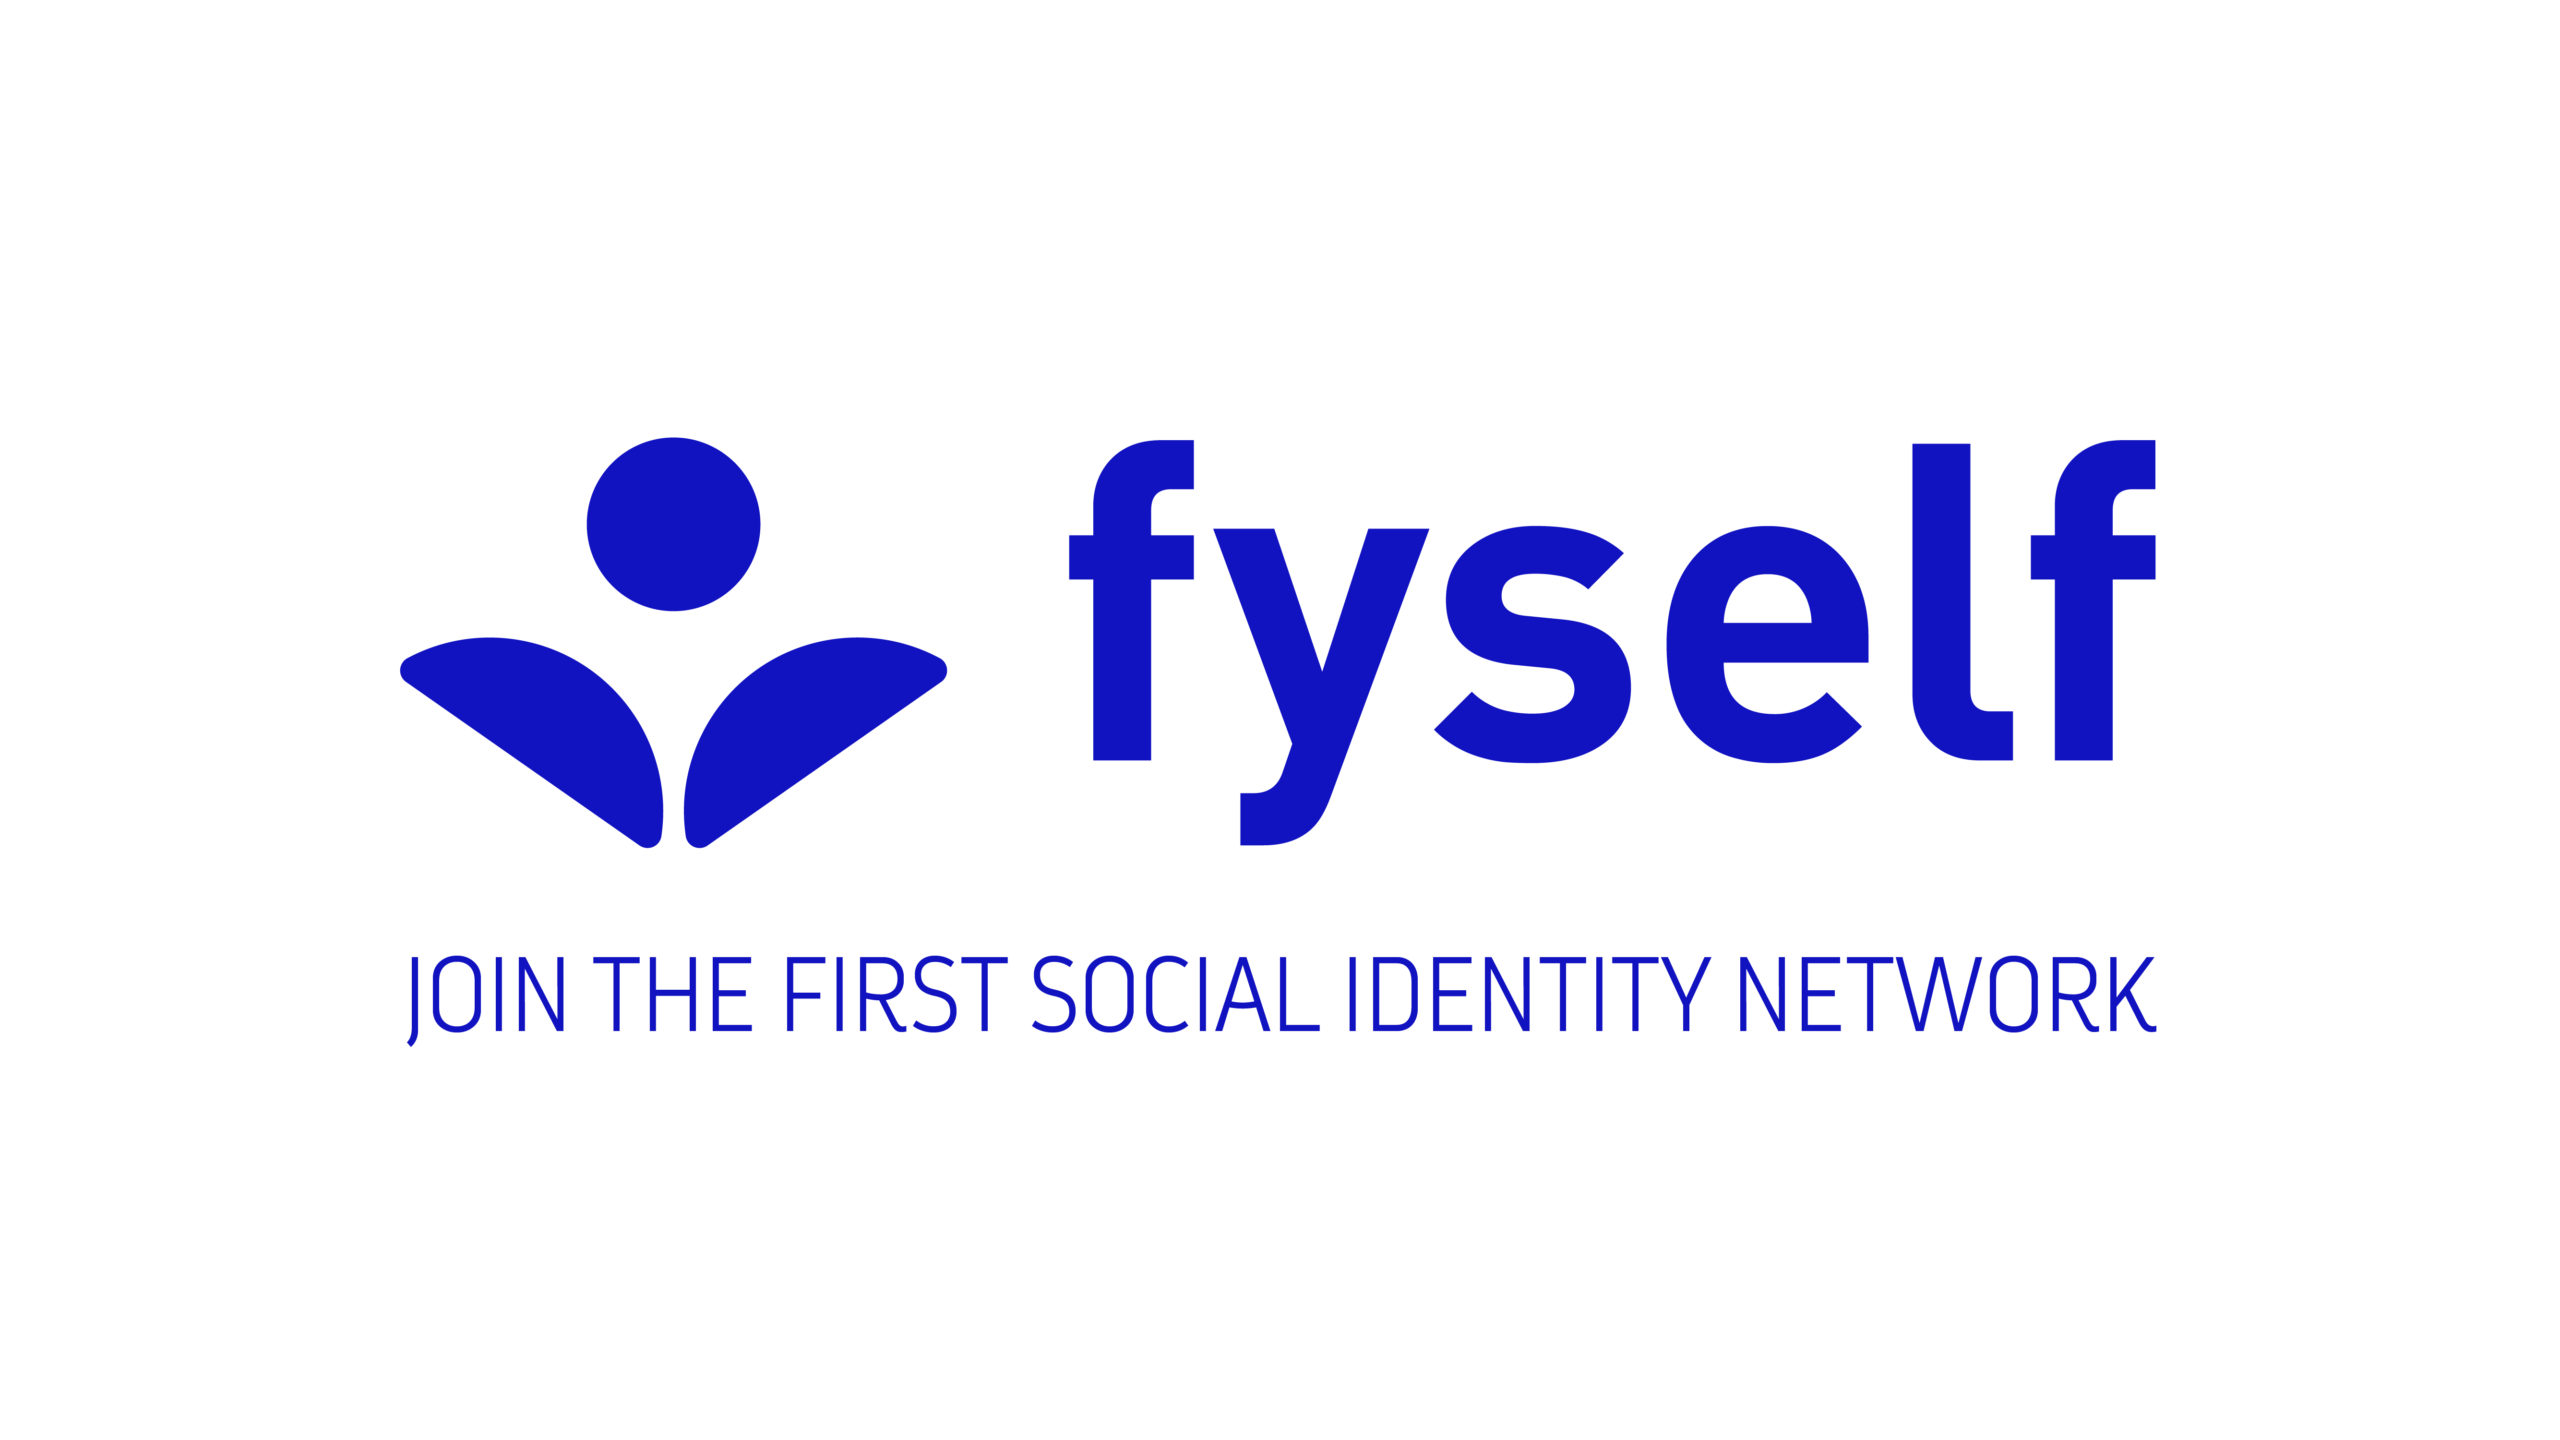 A Social Identity Network is a game changing social media site